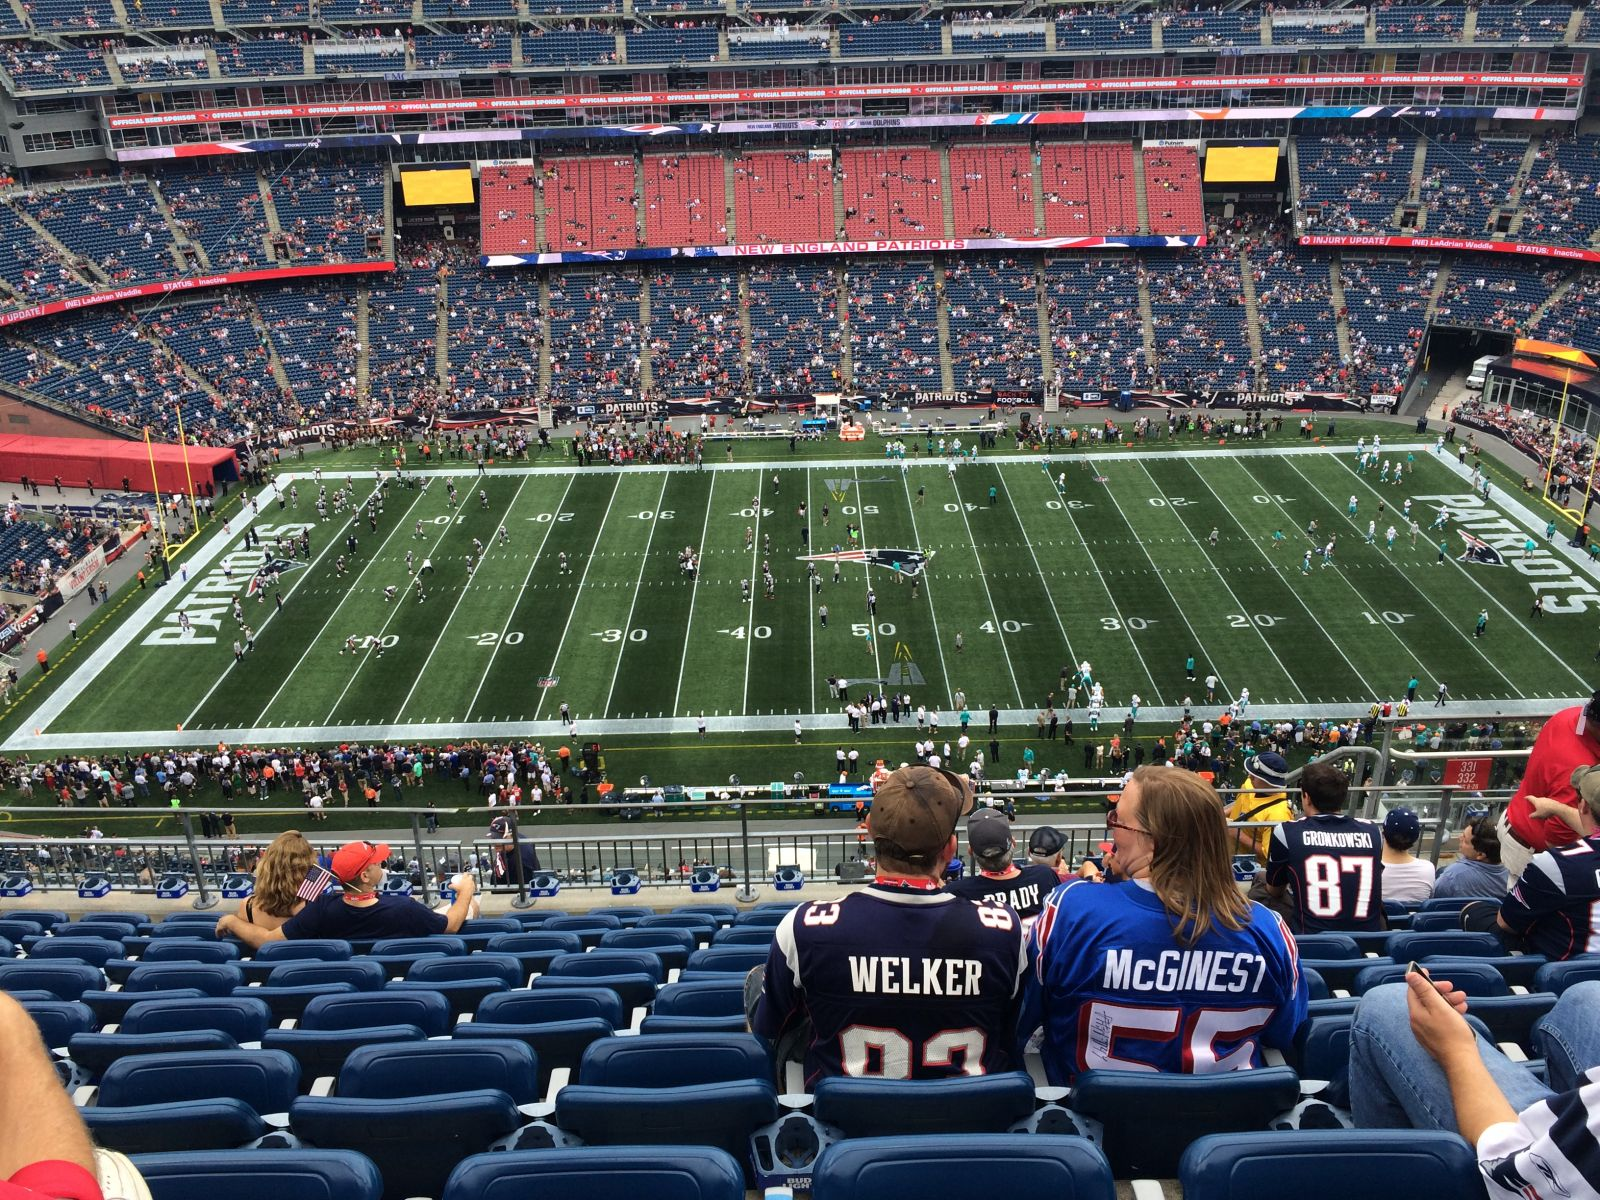 New England Patriots Seat View for Gillette Stadium Section 332, Row 16, Seat 8